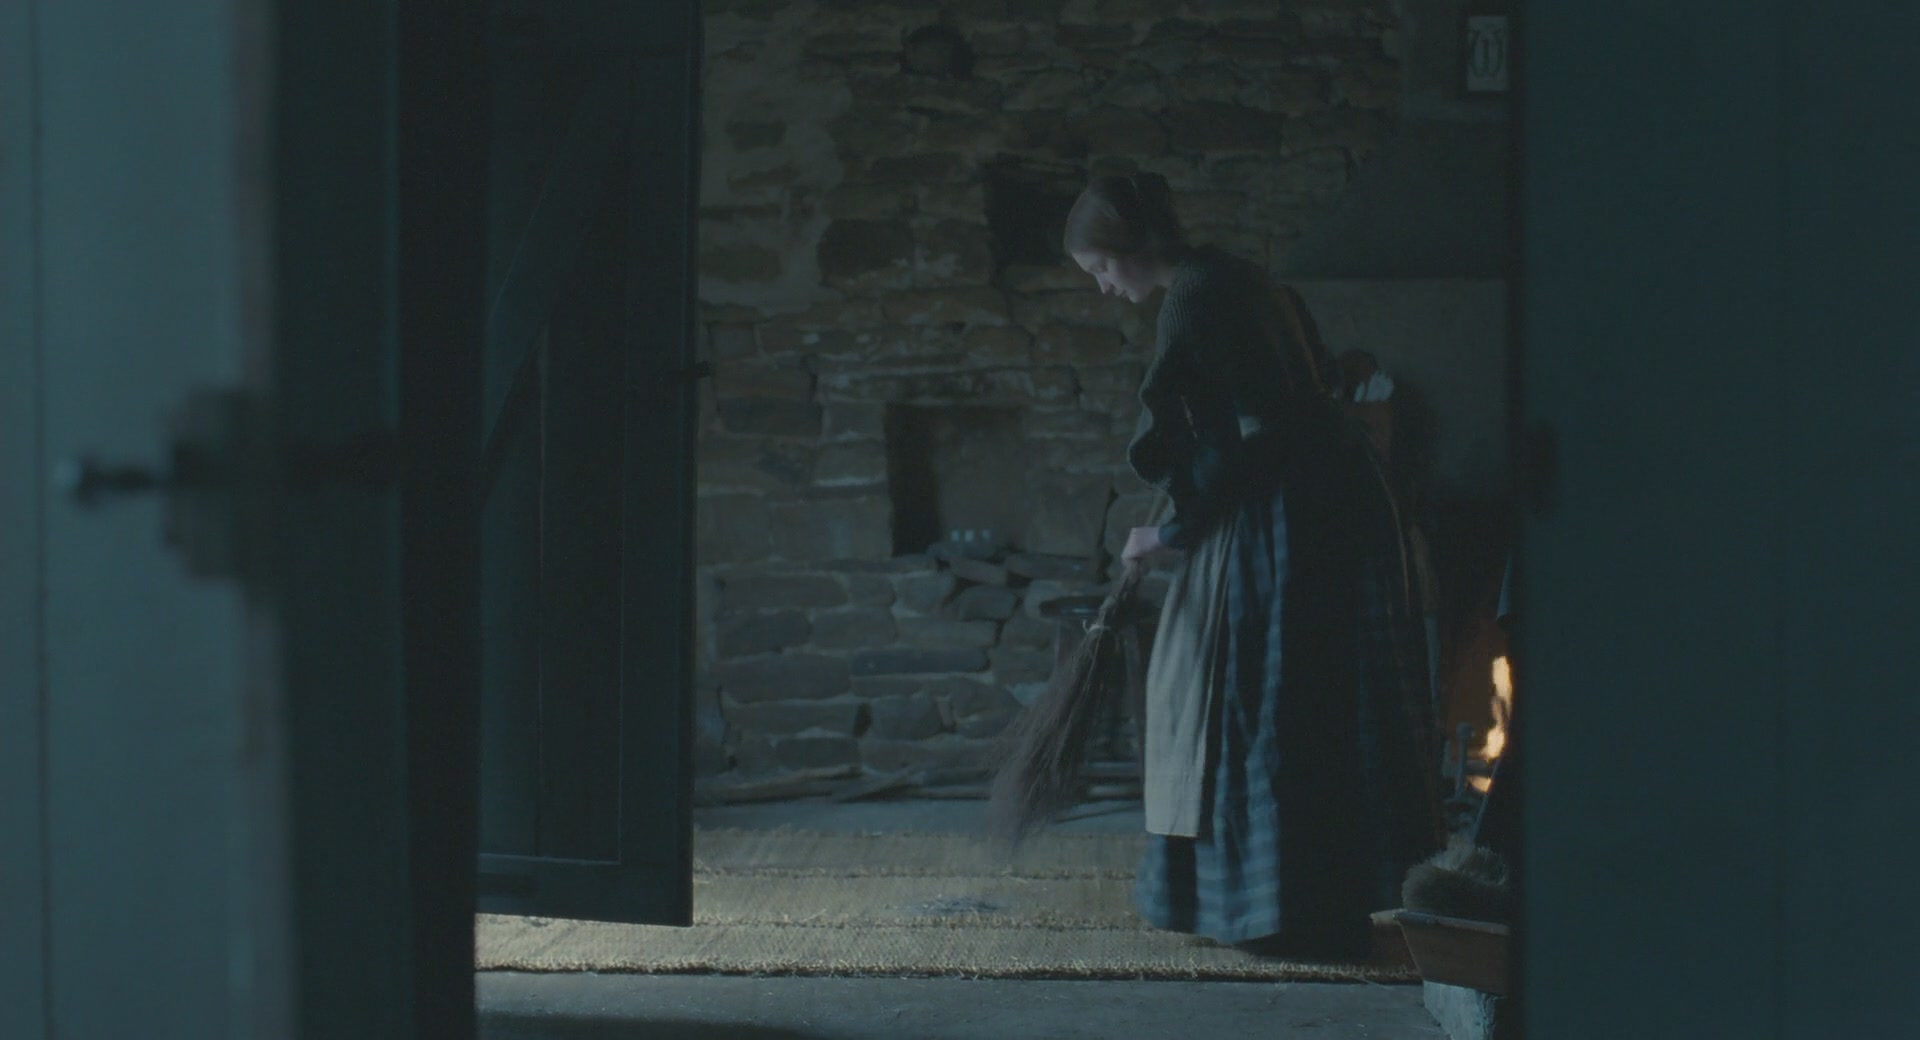 paranormal experience jane eyre How does charlotte bronte use setting to convey the experiences of her characters jane eyre discuss the importance of paranormal experiences in jane eyre.